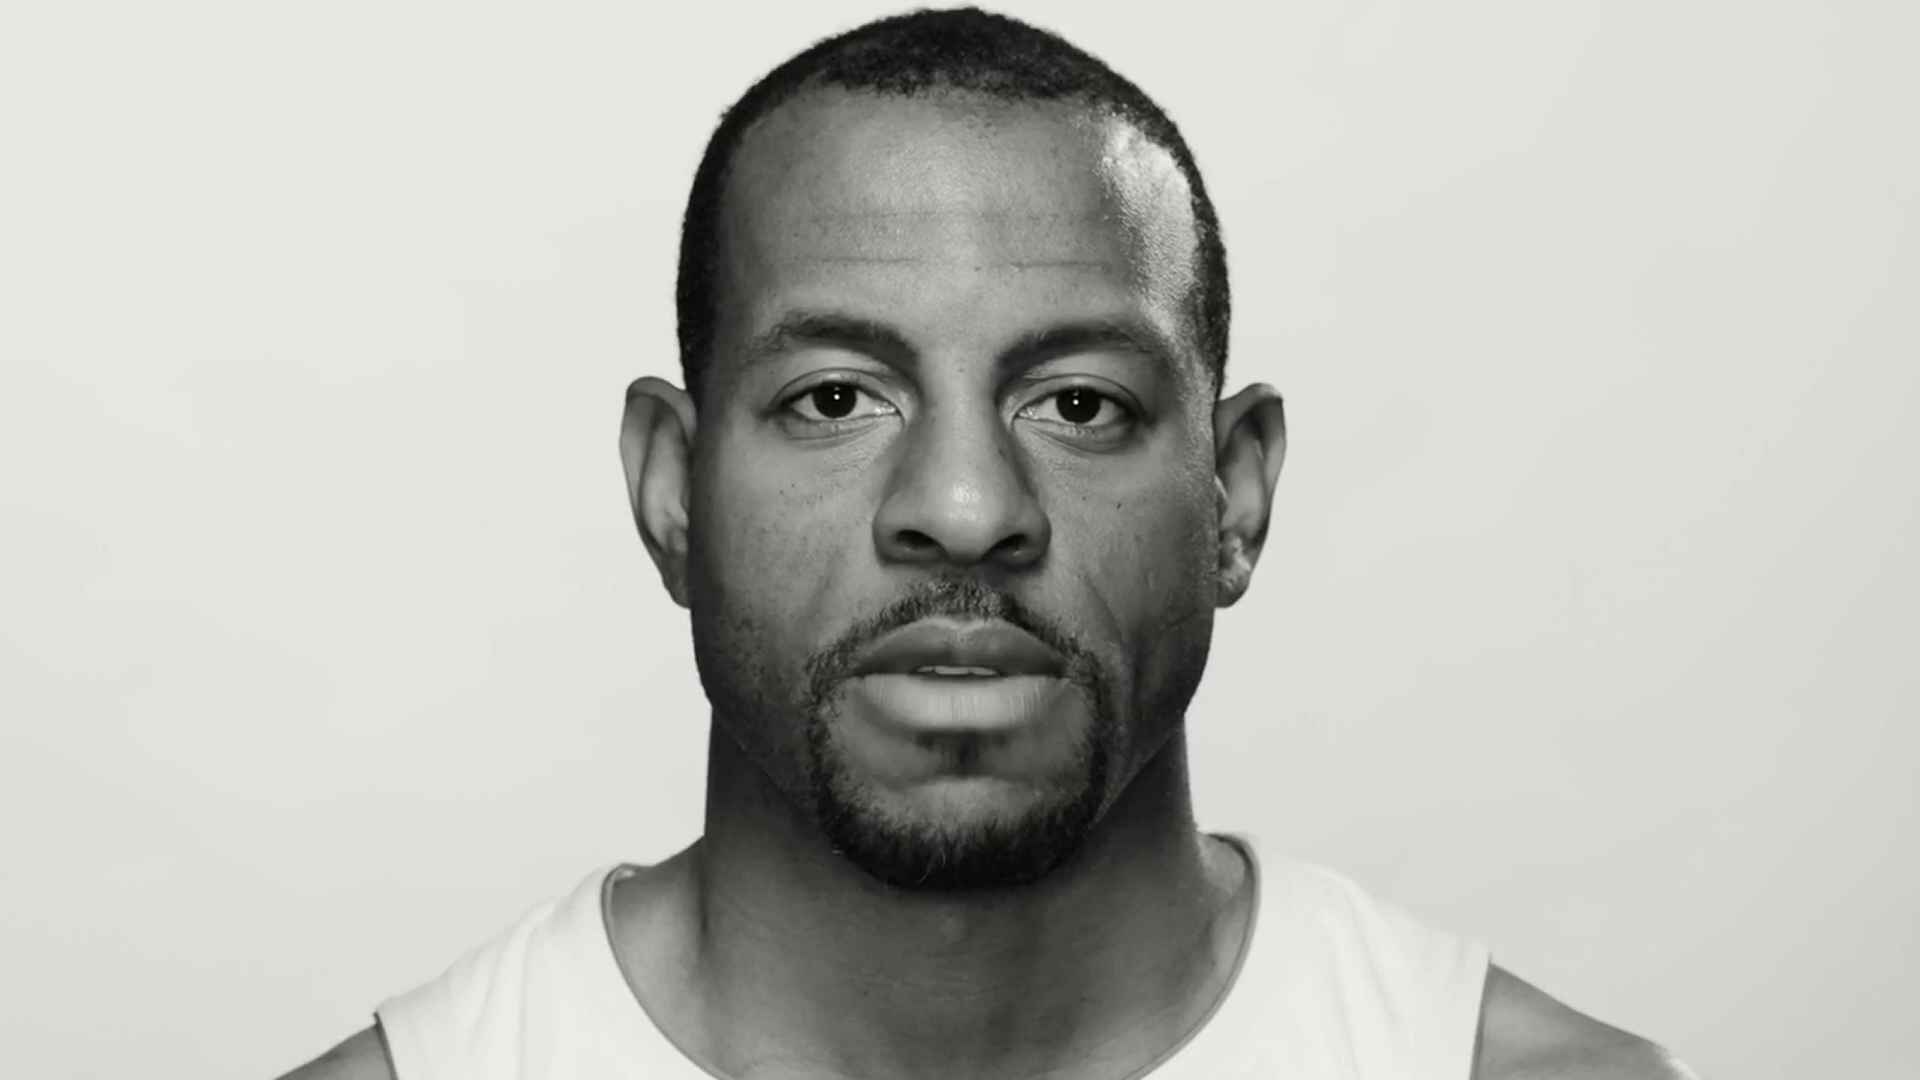 Iguodala Talks About What MLK Stood For